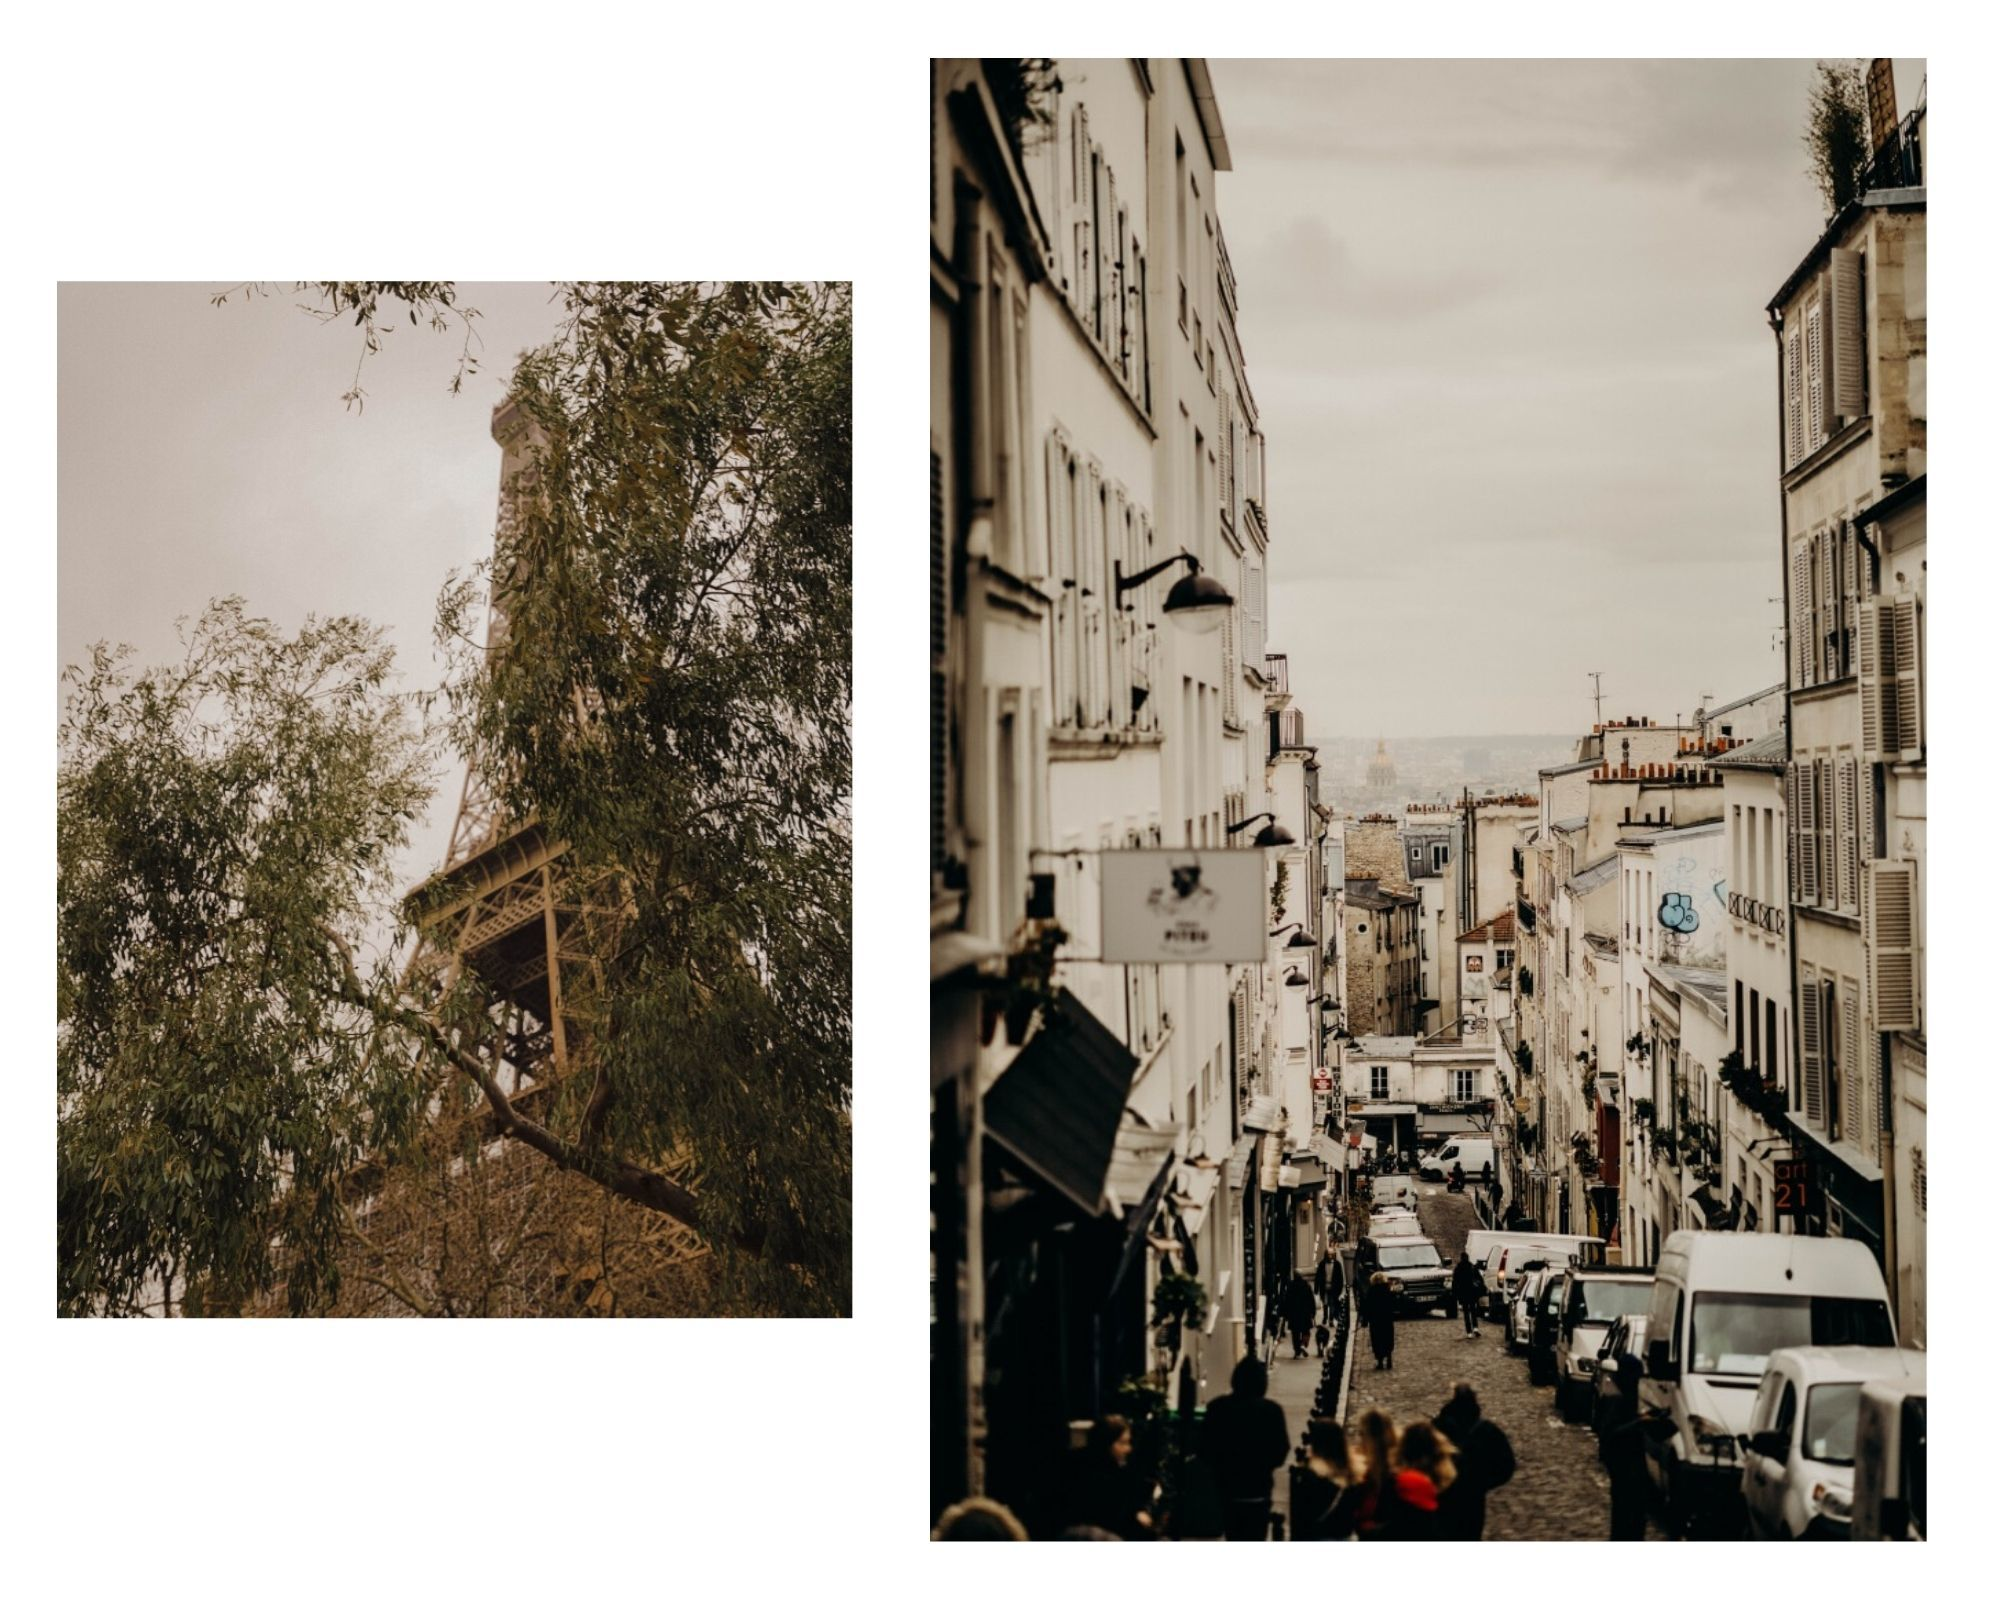 paris streets and efile tower